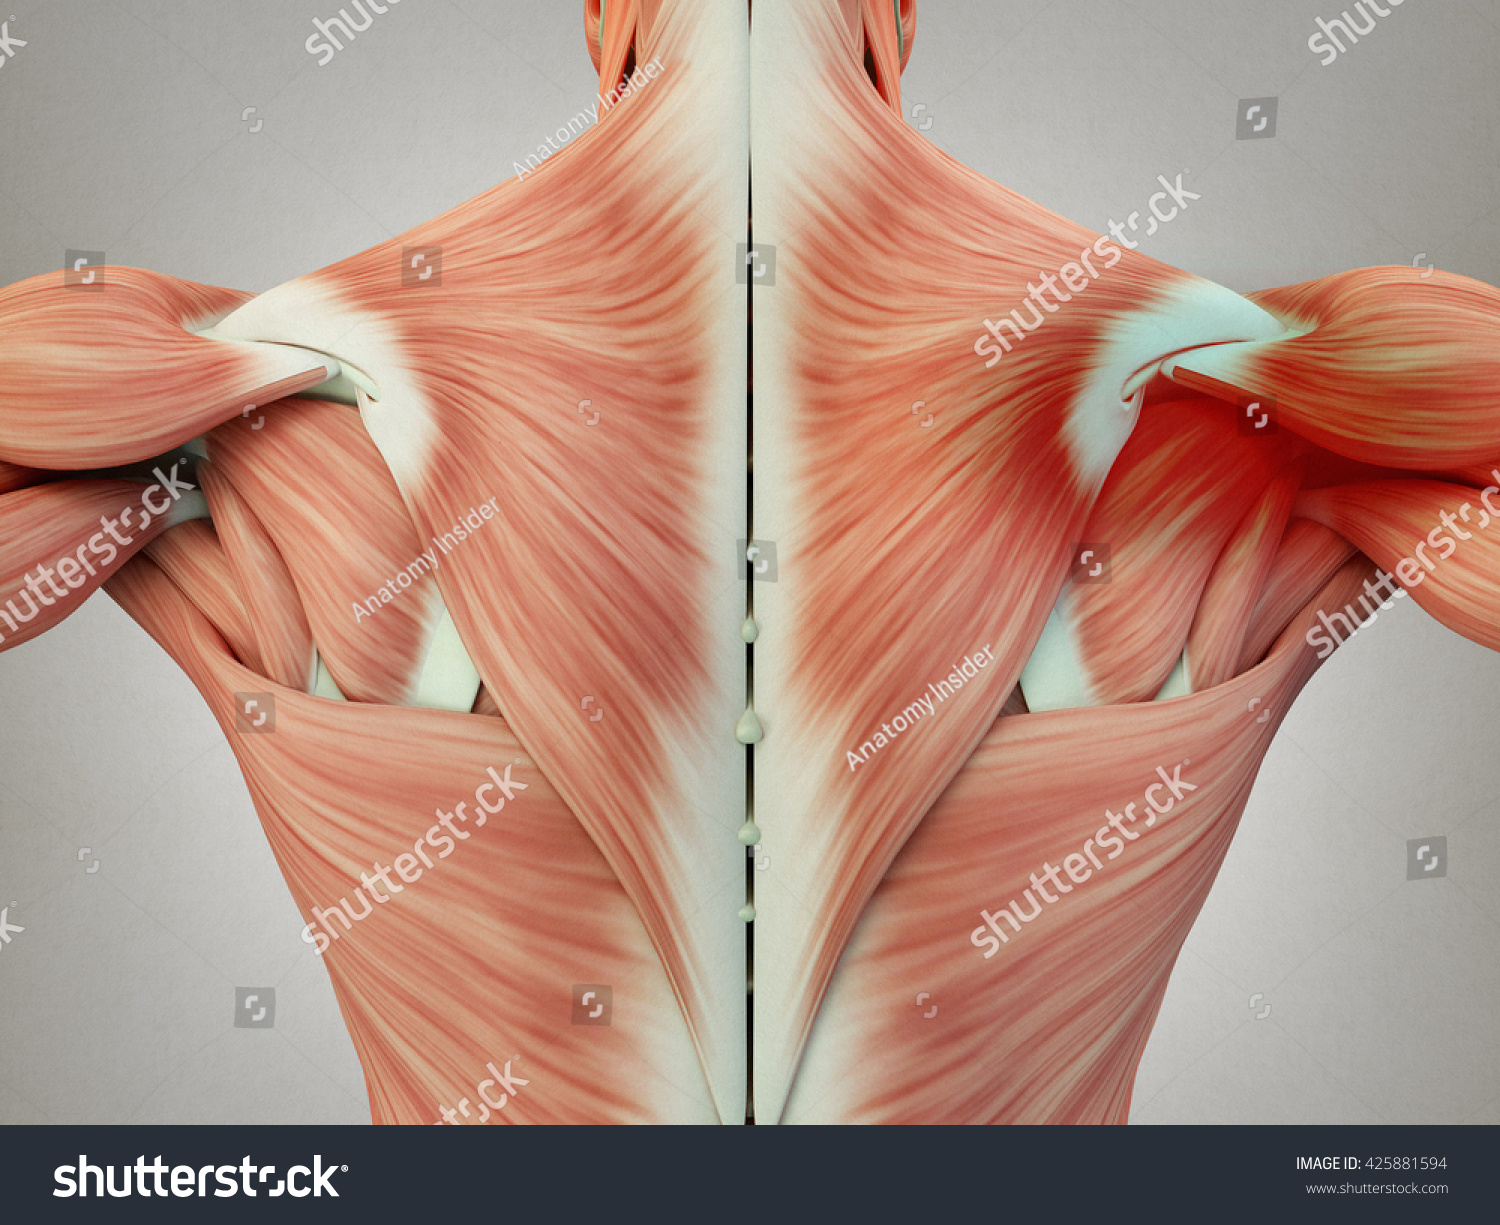 Human Anatomy Torso Back Muscles Pain Stock Illustration 425881594 ...